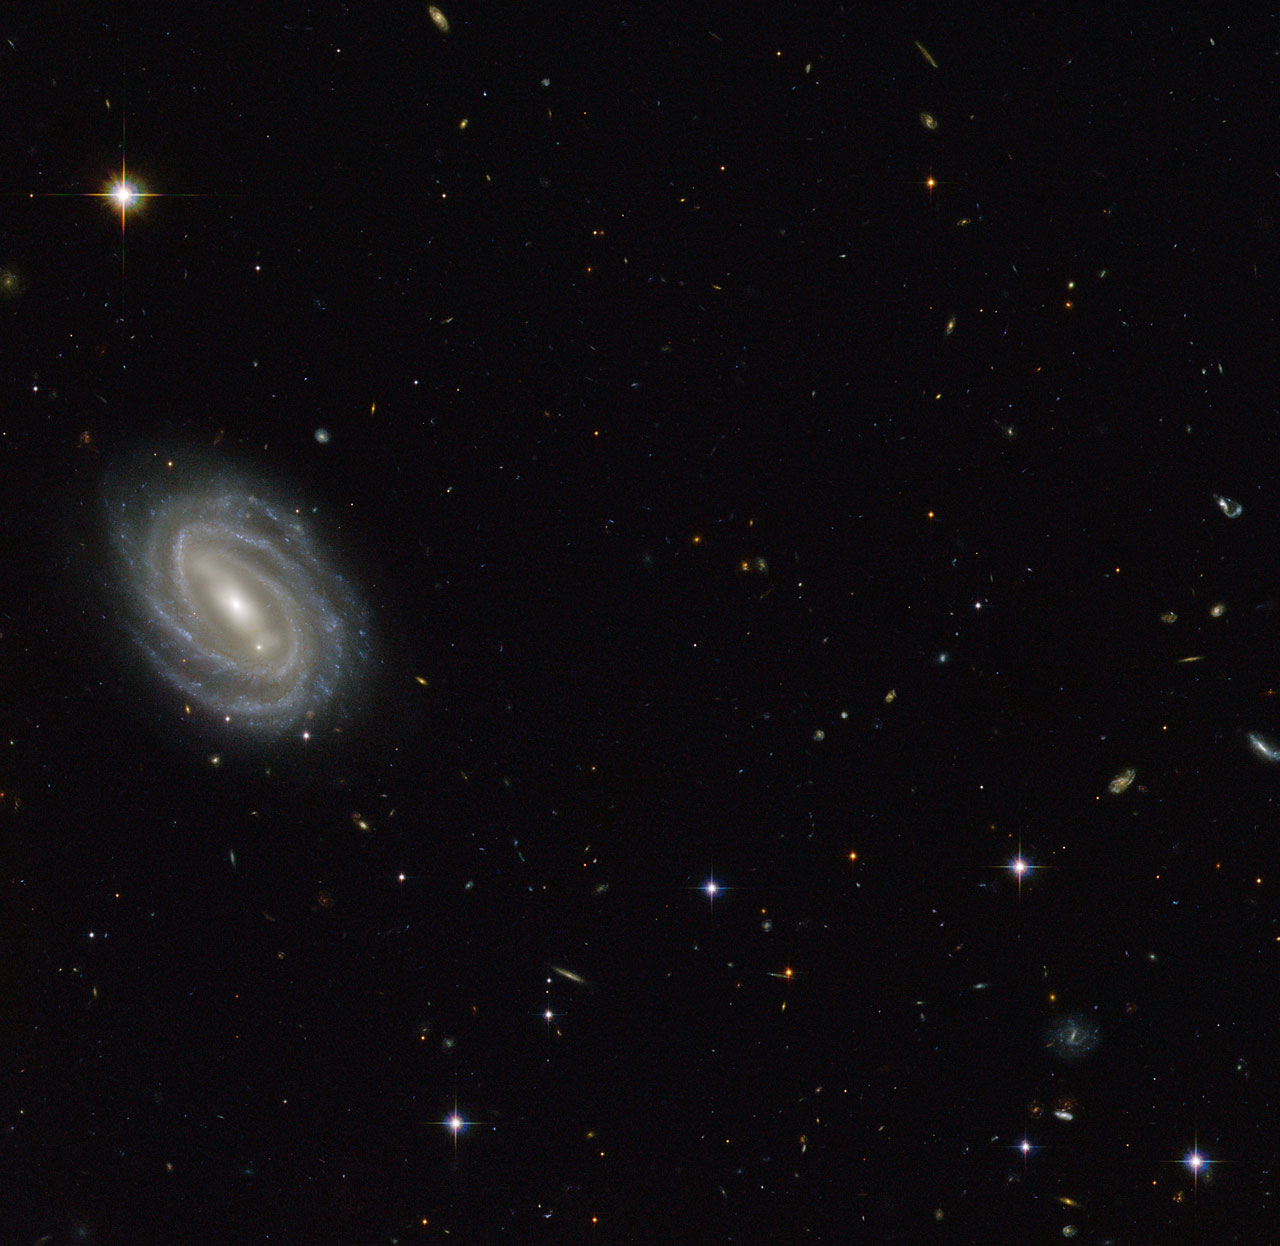 This new NASA/ESA Hubble Space Telescope image shows a beautiful spiral galaxy known as PGC 54493, located in the constellation of Serpens (The Serpent). This galaxy is part of a galaxy cluster that has been studied by astronomers exploring an intriguing phenomenon known as weak gravitational lensing. This effect, caused by the uneven distribution of matter (including dark matter) throughout the Universe, has been explored via surveys such as the Hubble Medium Deep Survey. Dark matter is one of the great mysteries in cosmology. Credit: gsfc/Flickr, CC BY 2.0